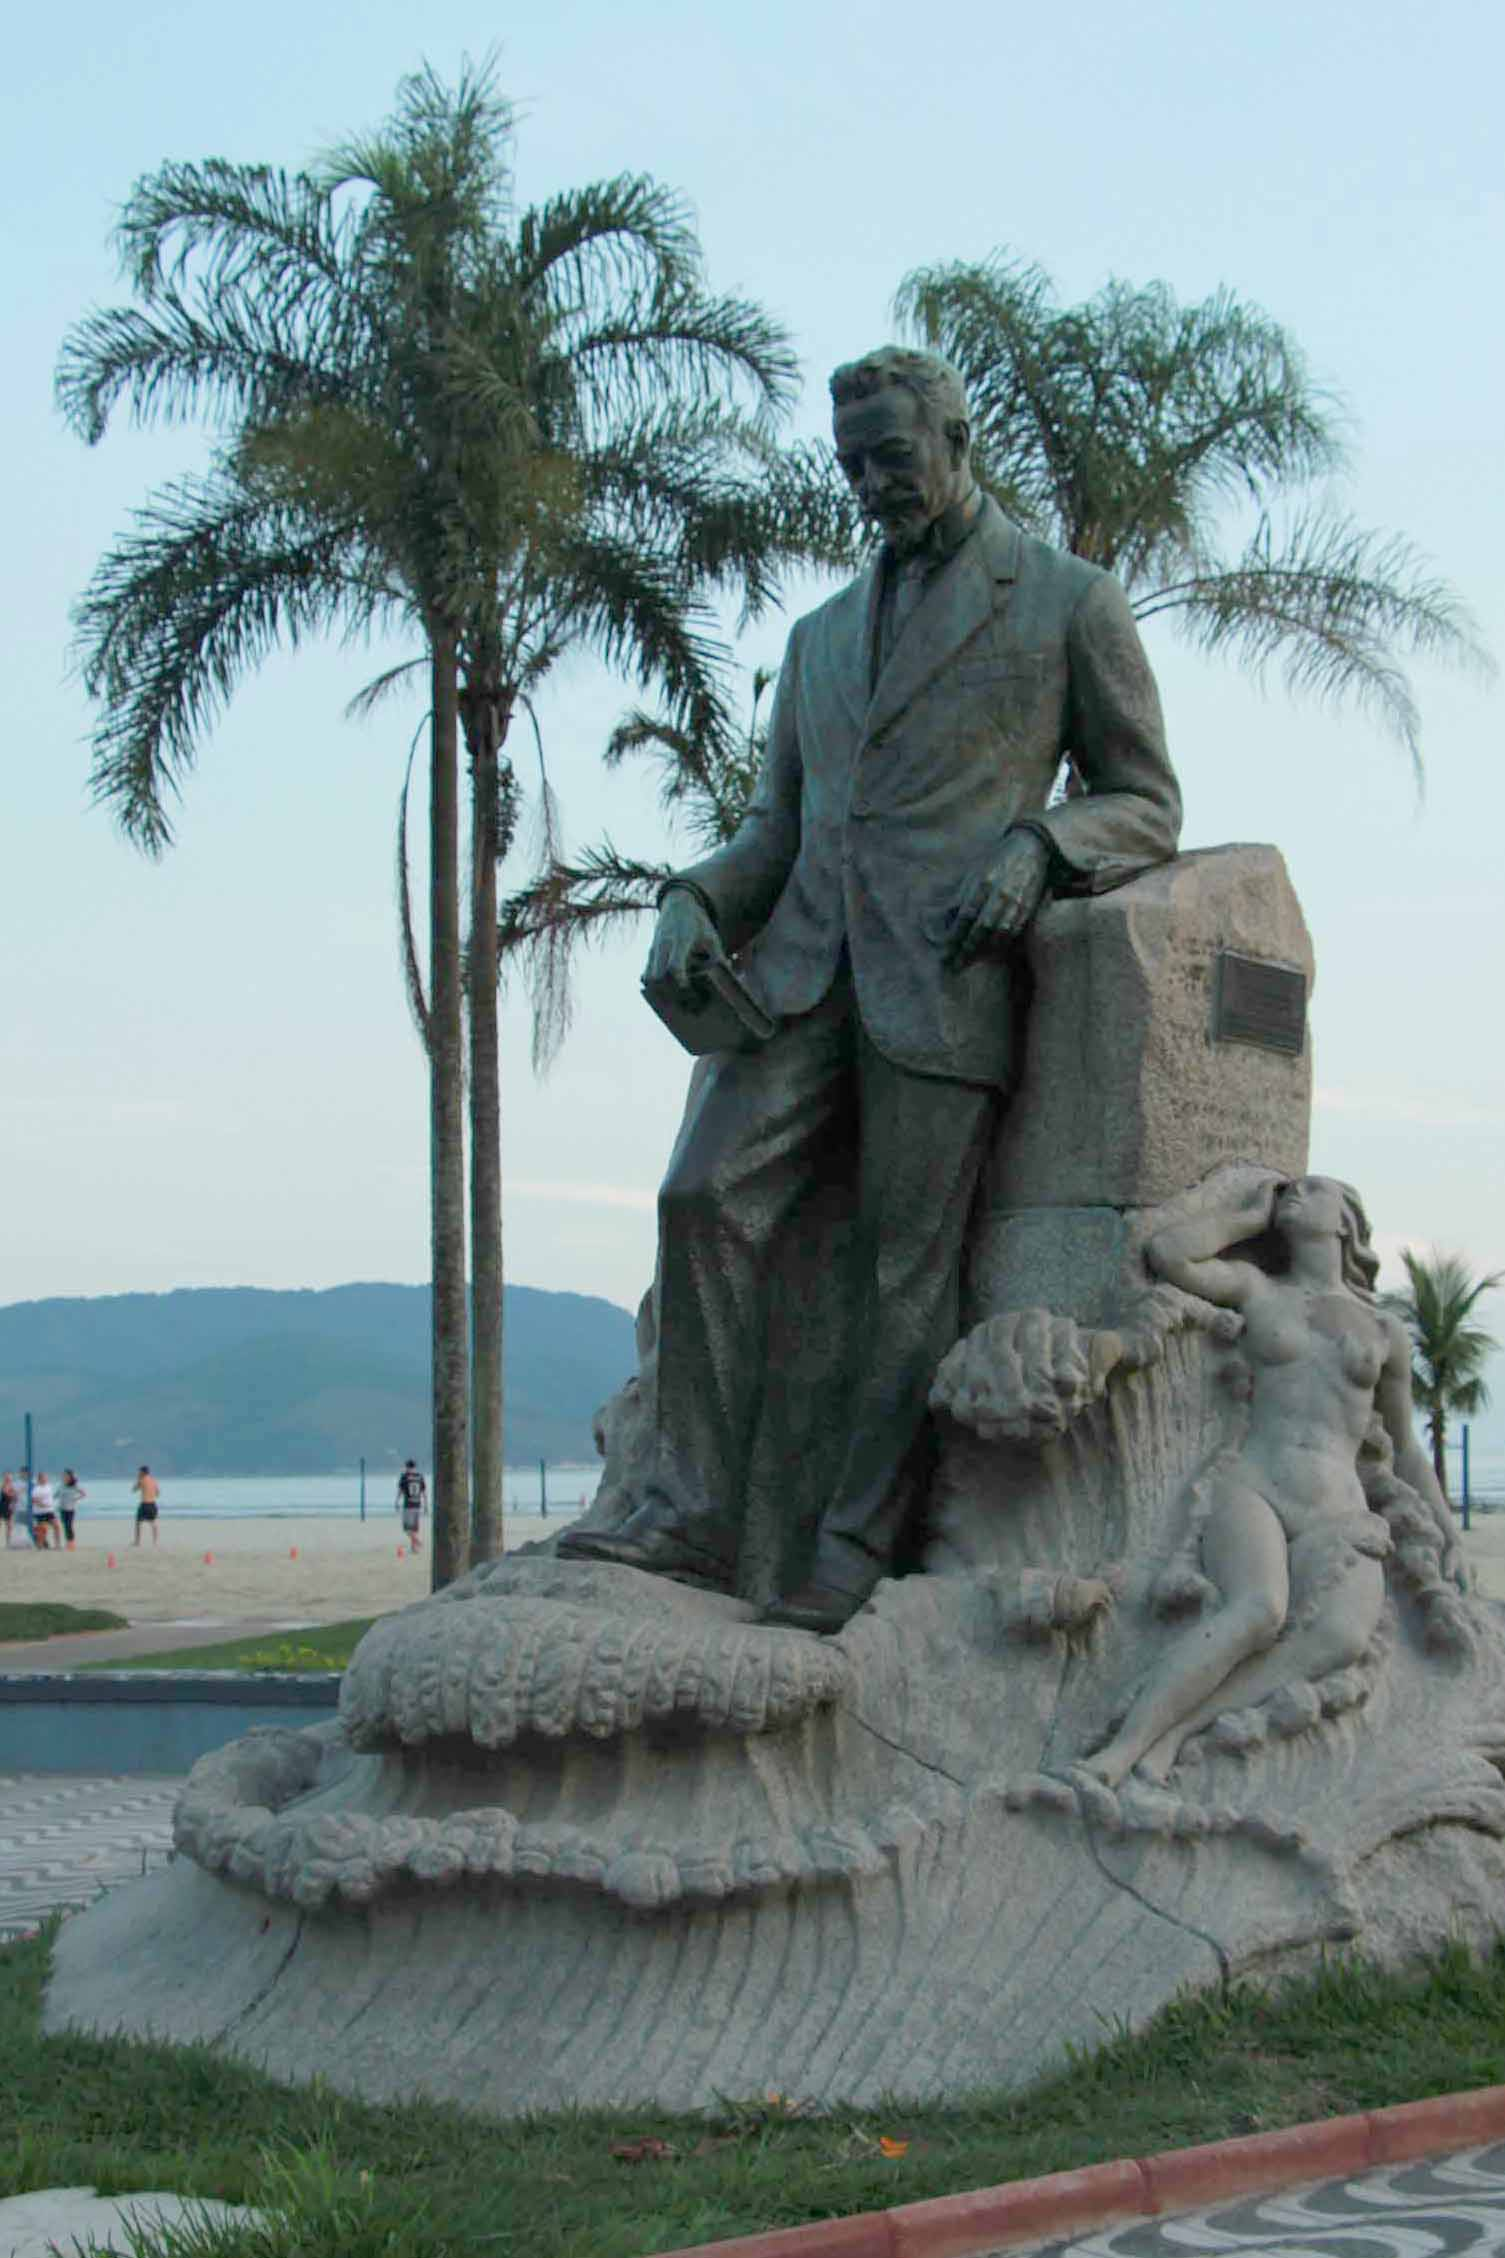 Vicente de Carvalho, o Poeta do Mar